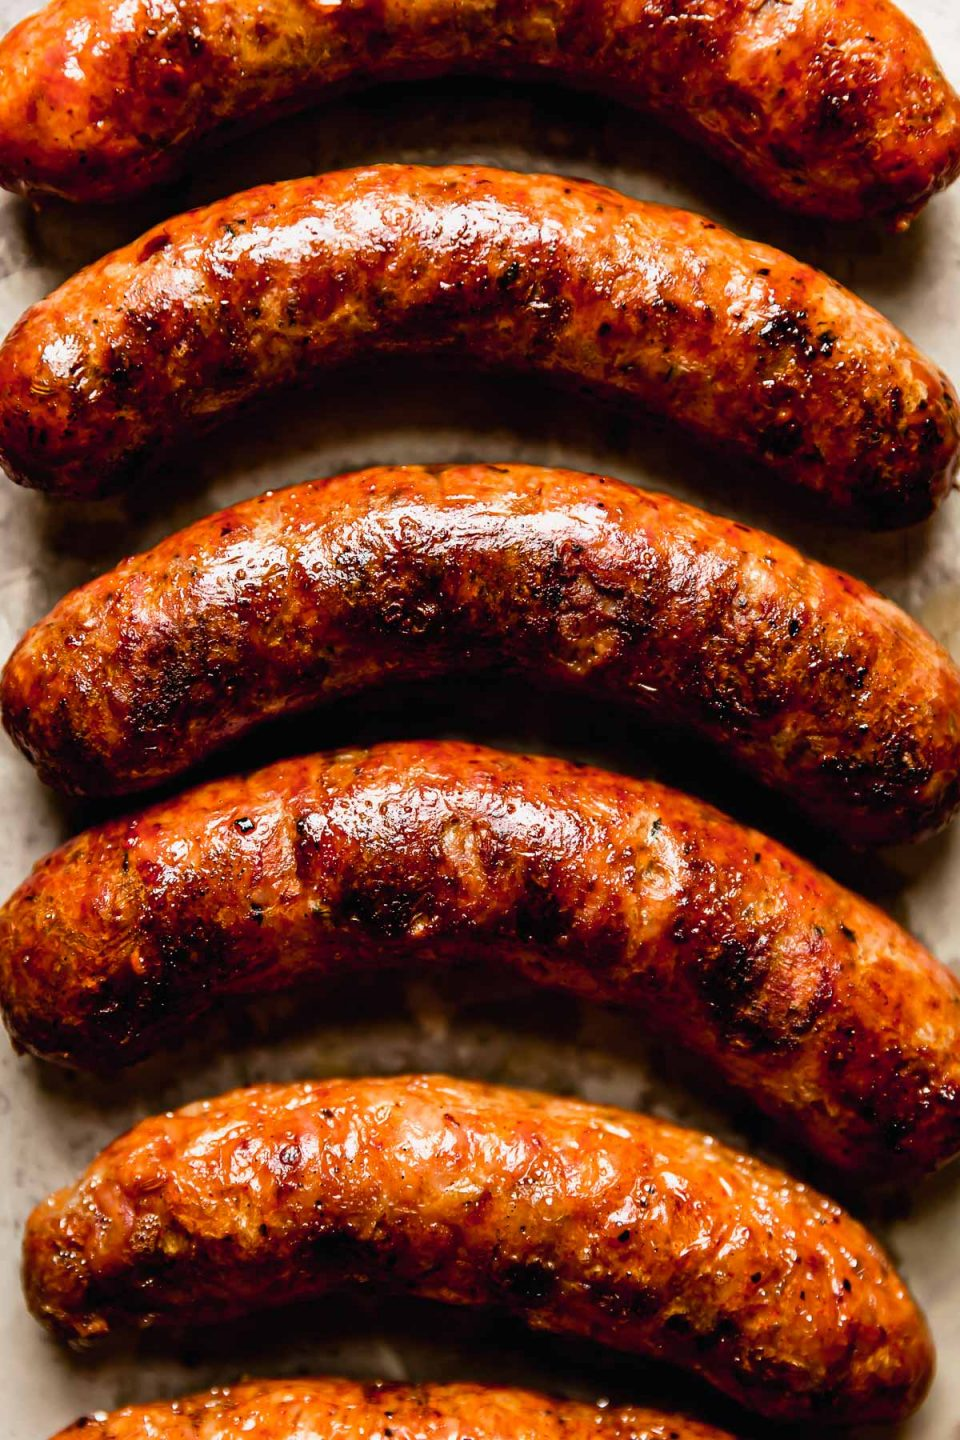 Close up photo of 6 grilled Italian sausages.